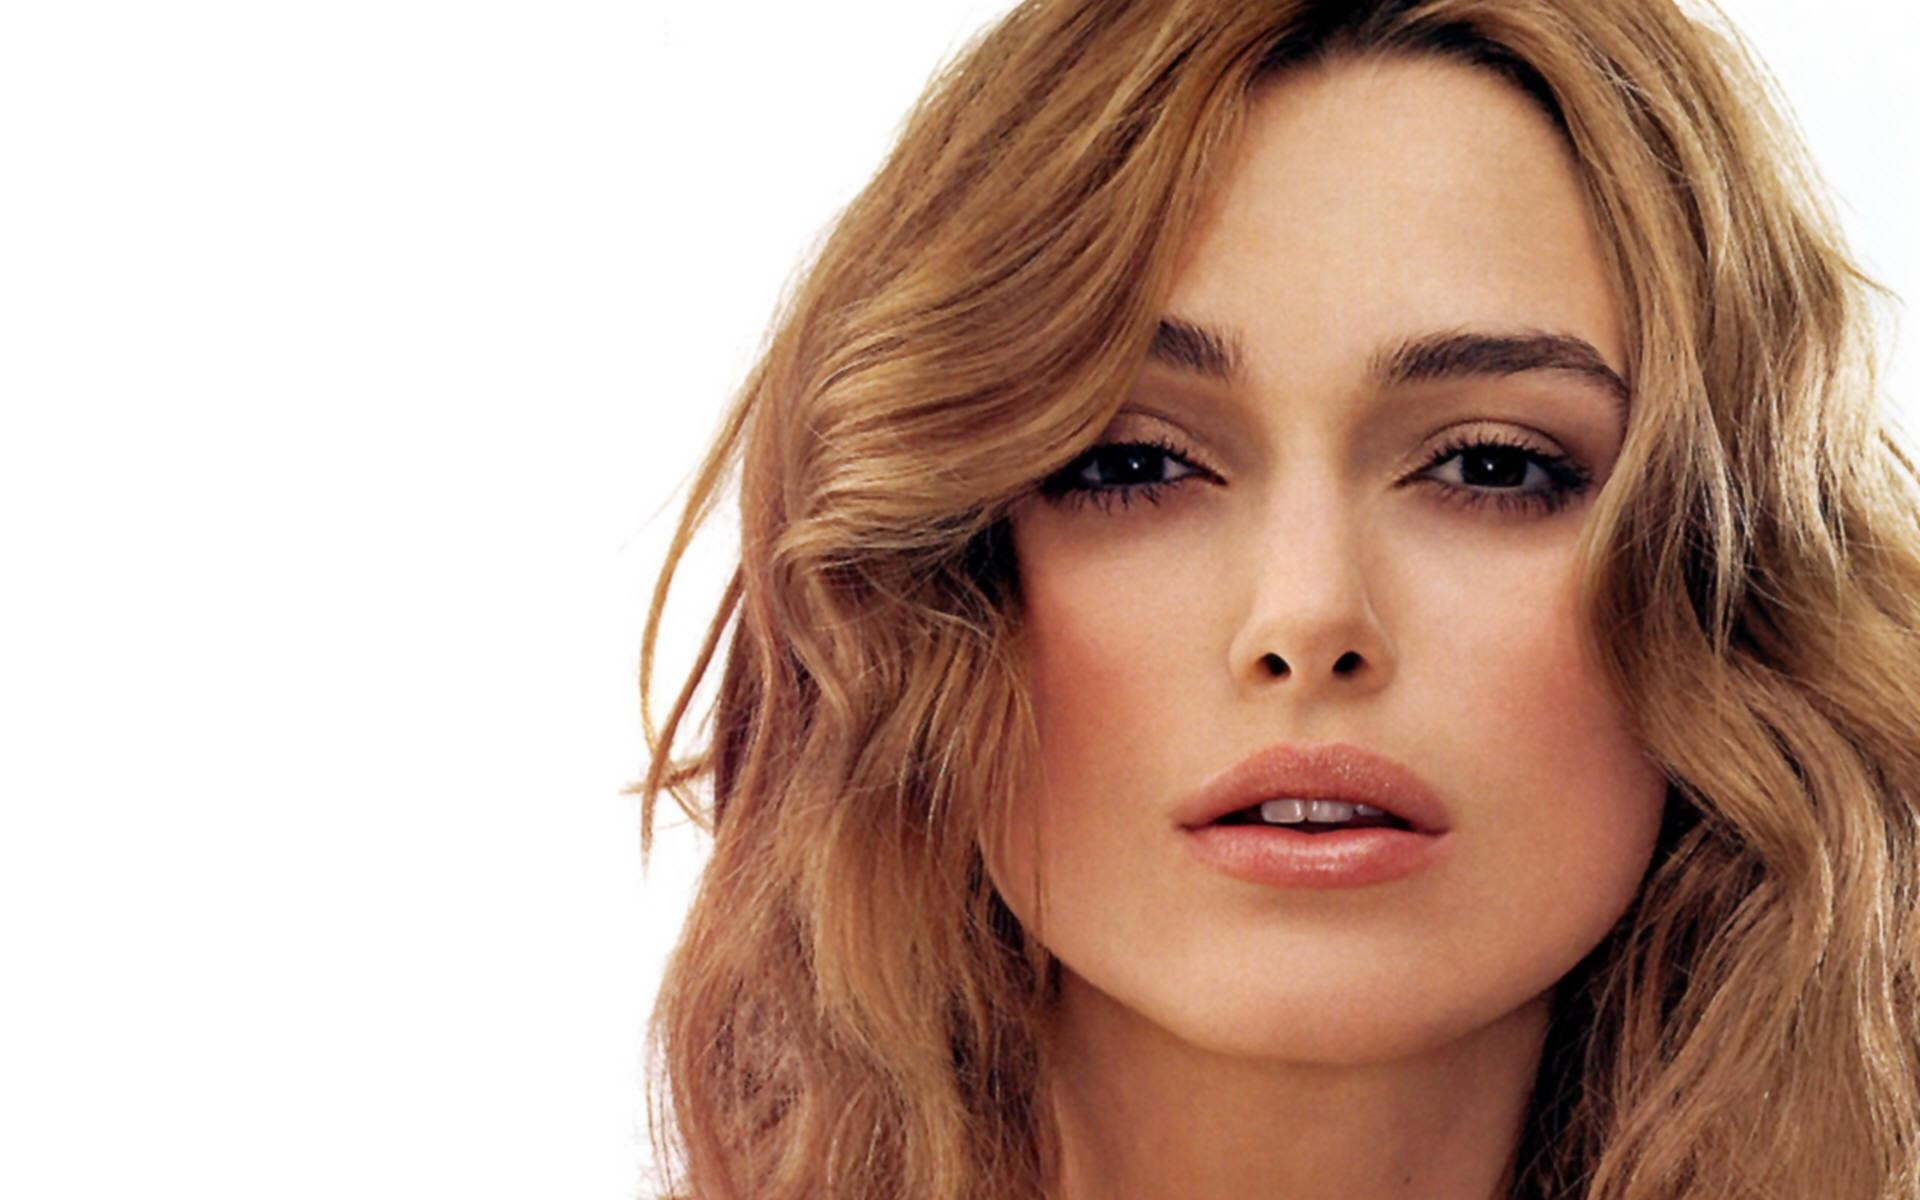 Tags: Keira Knightley. Category: Celebrities